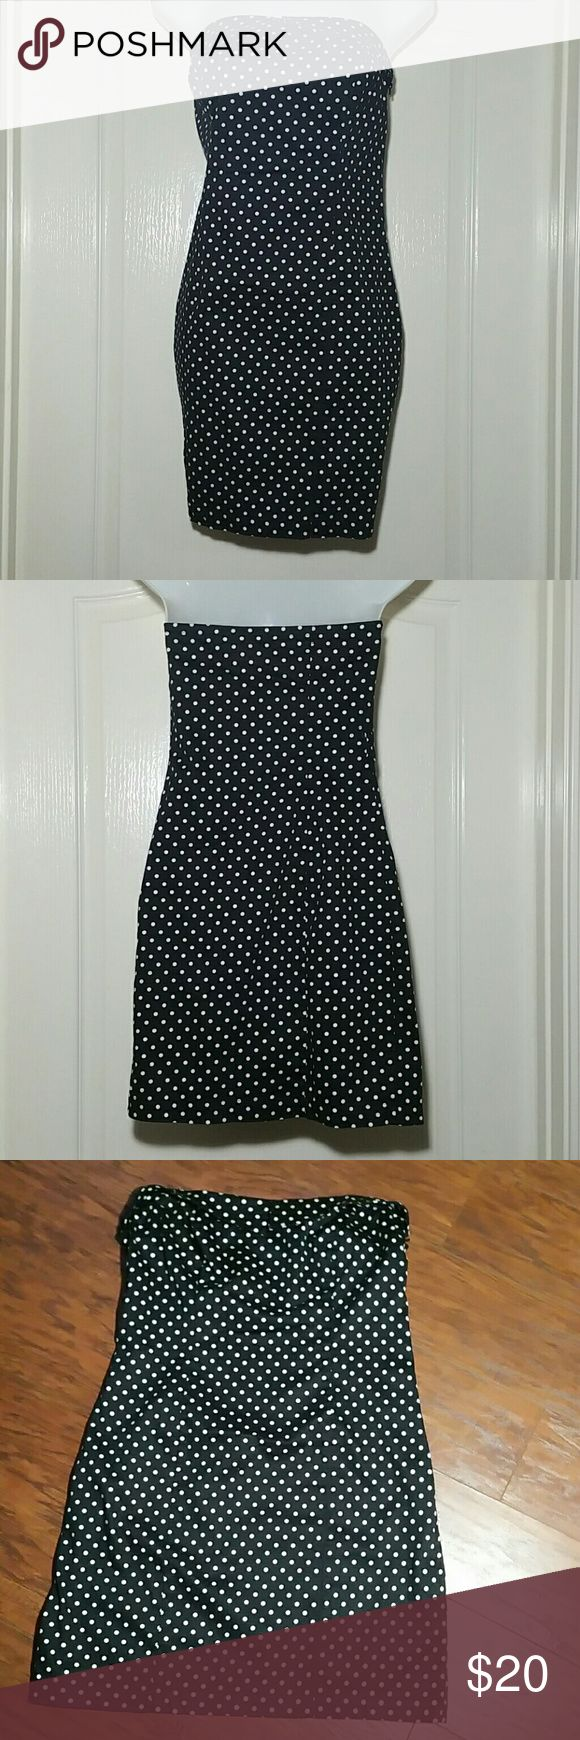 Guess dress Guess dress, strapless, polka-dot, has inserts for straps if u wanted to use some, side zipper, cotton/spandex Guess Dresses Mini